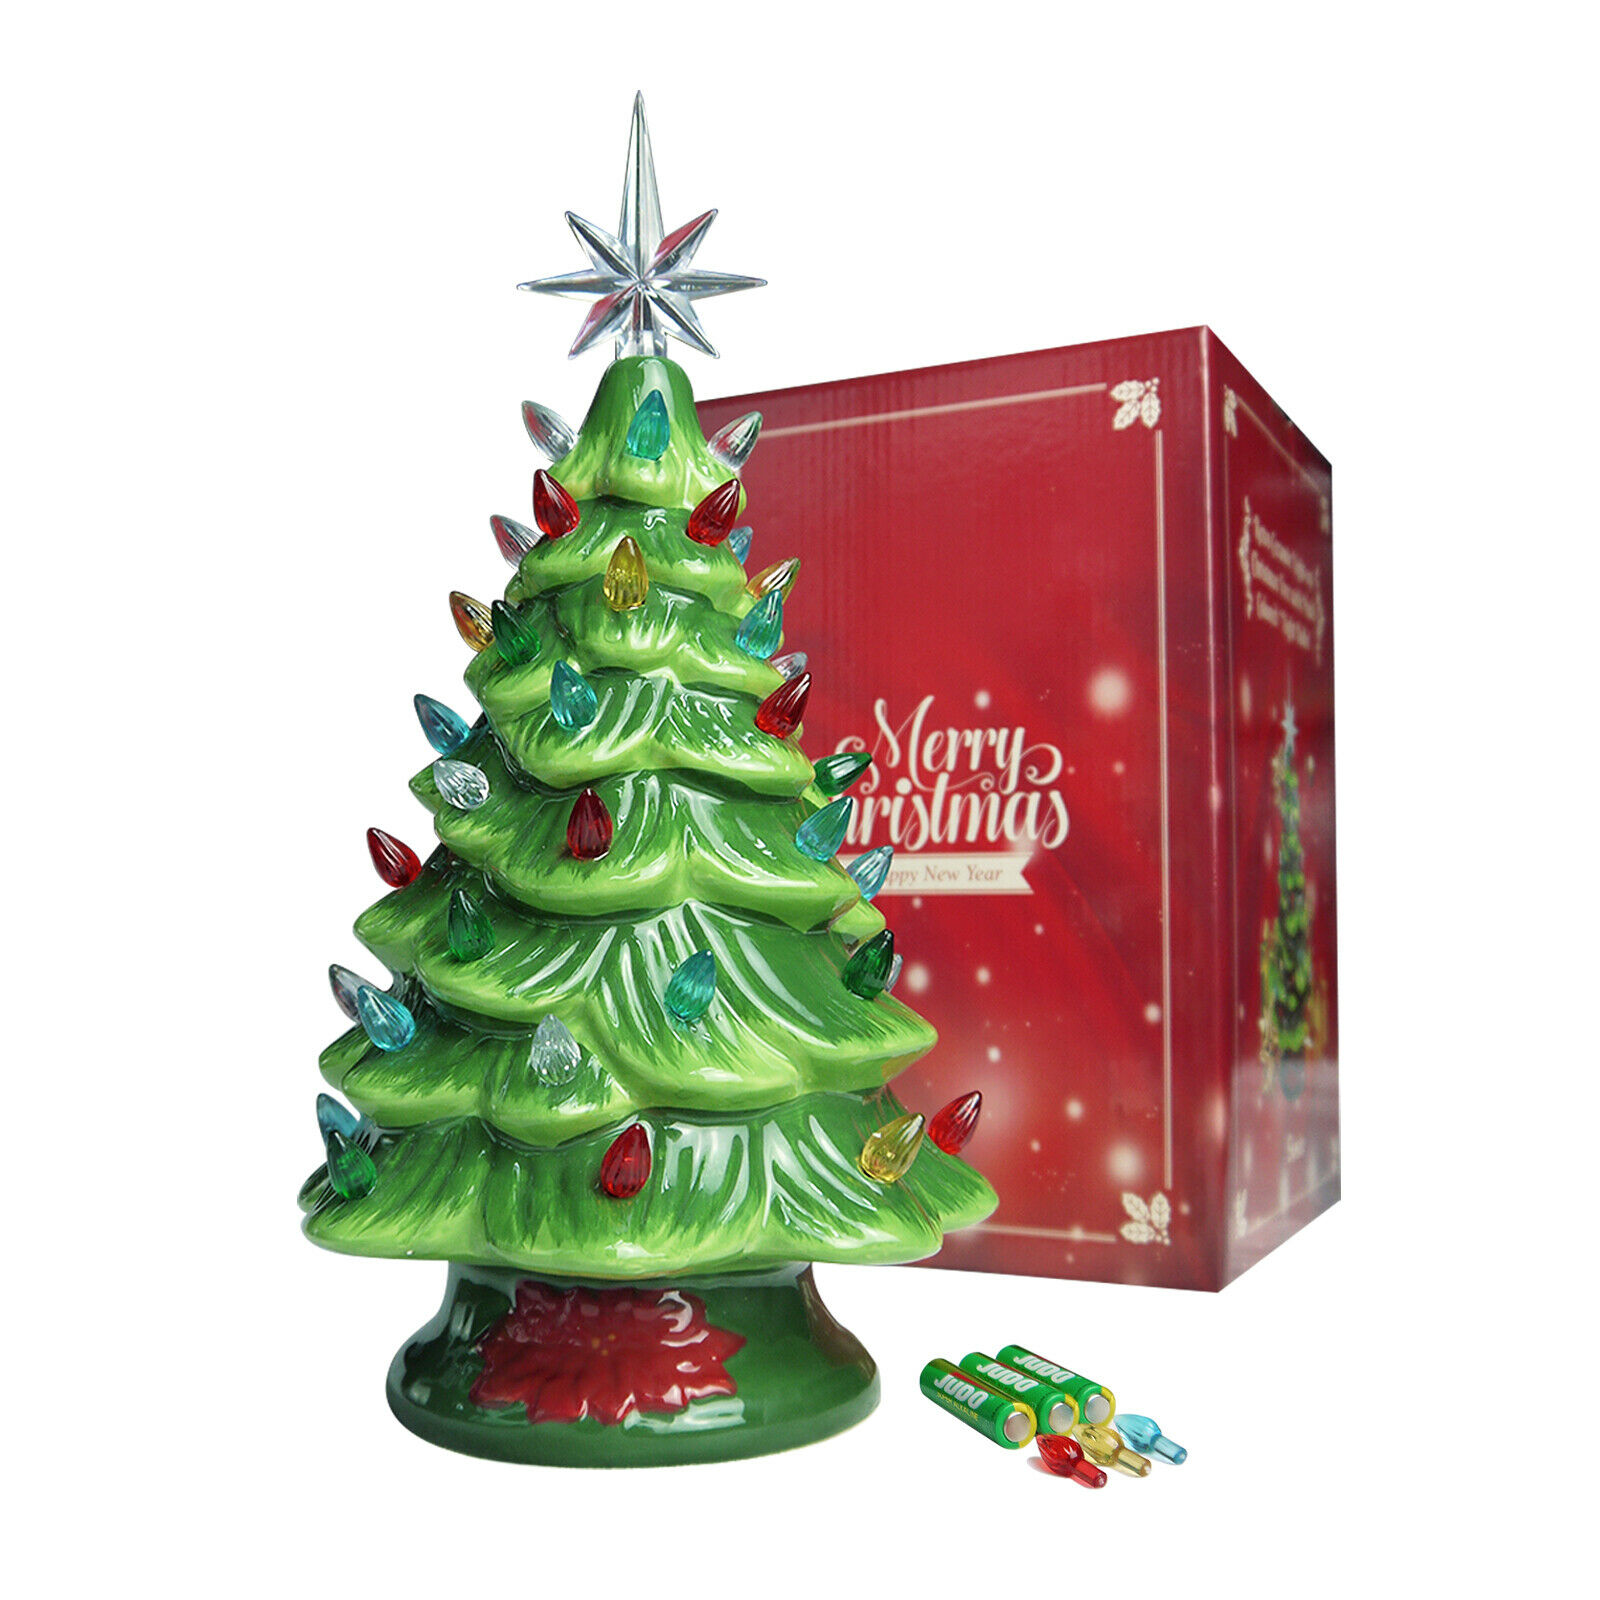 Lighted Ceramic Christmas Tree Cordless 13 Decor Green